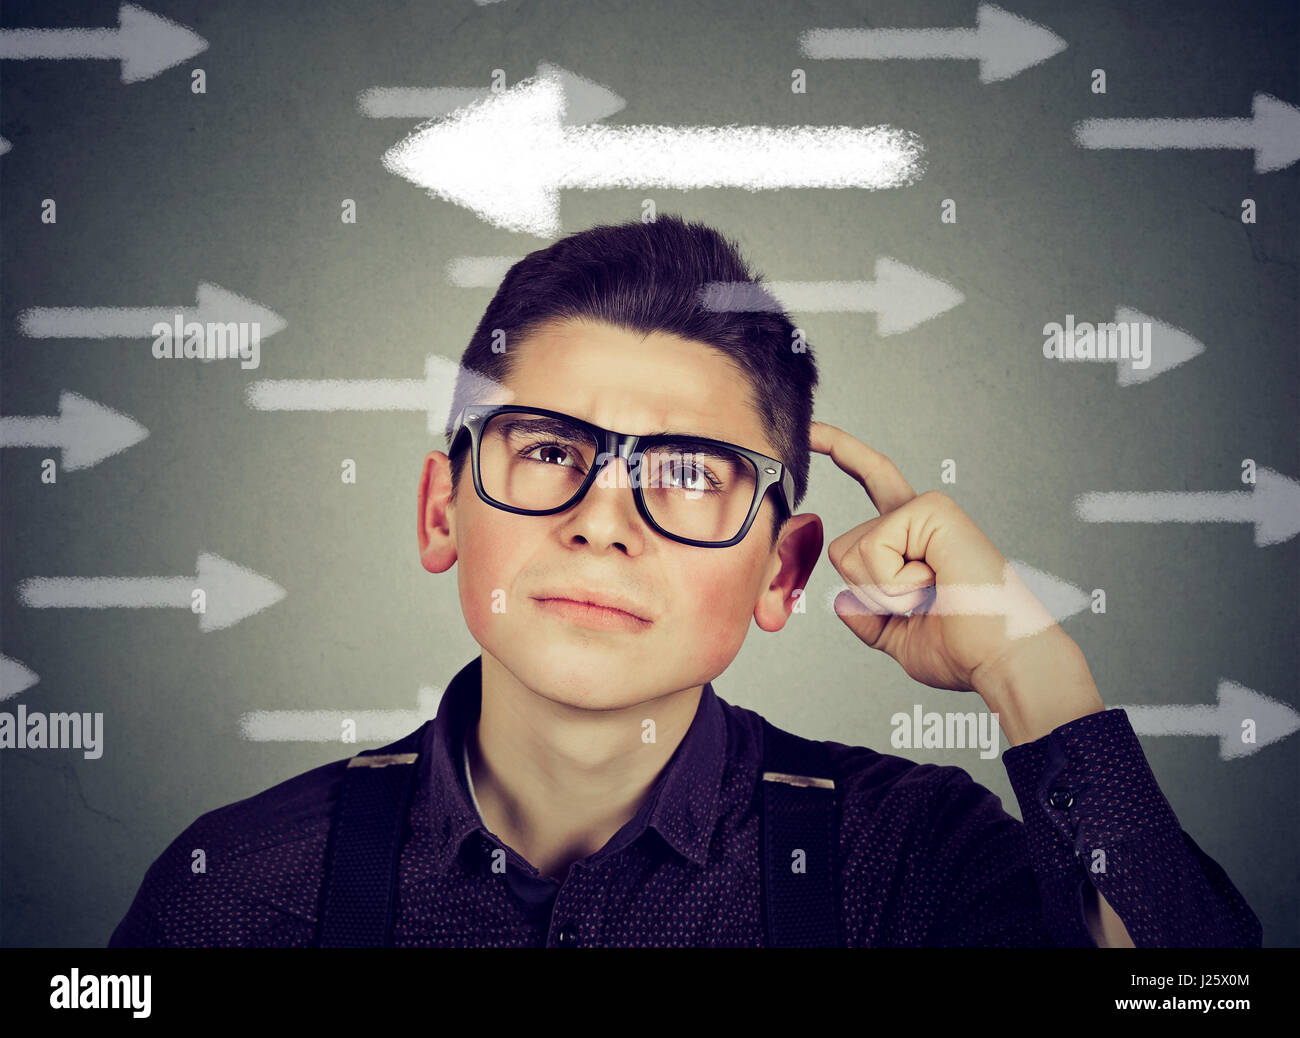 Young man in glasses has a second thought choice - Stock Image